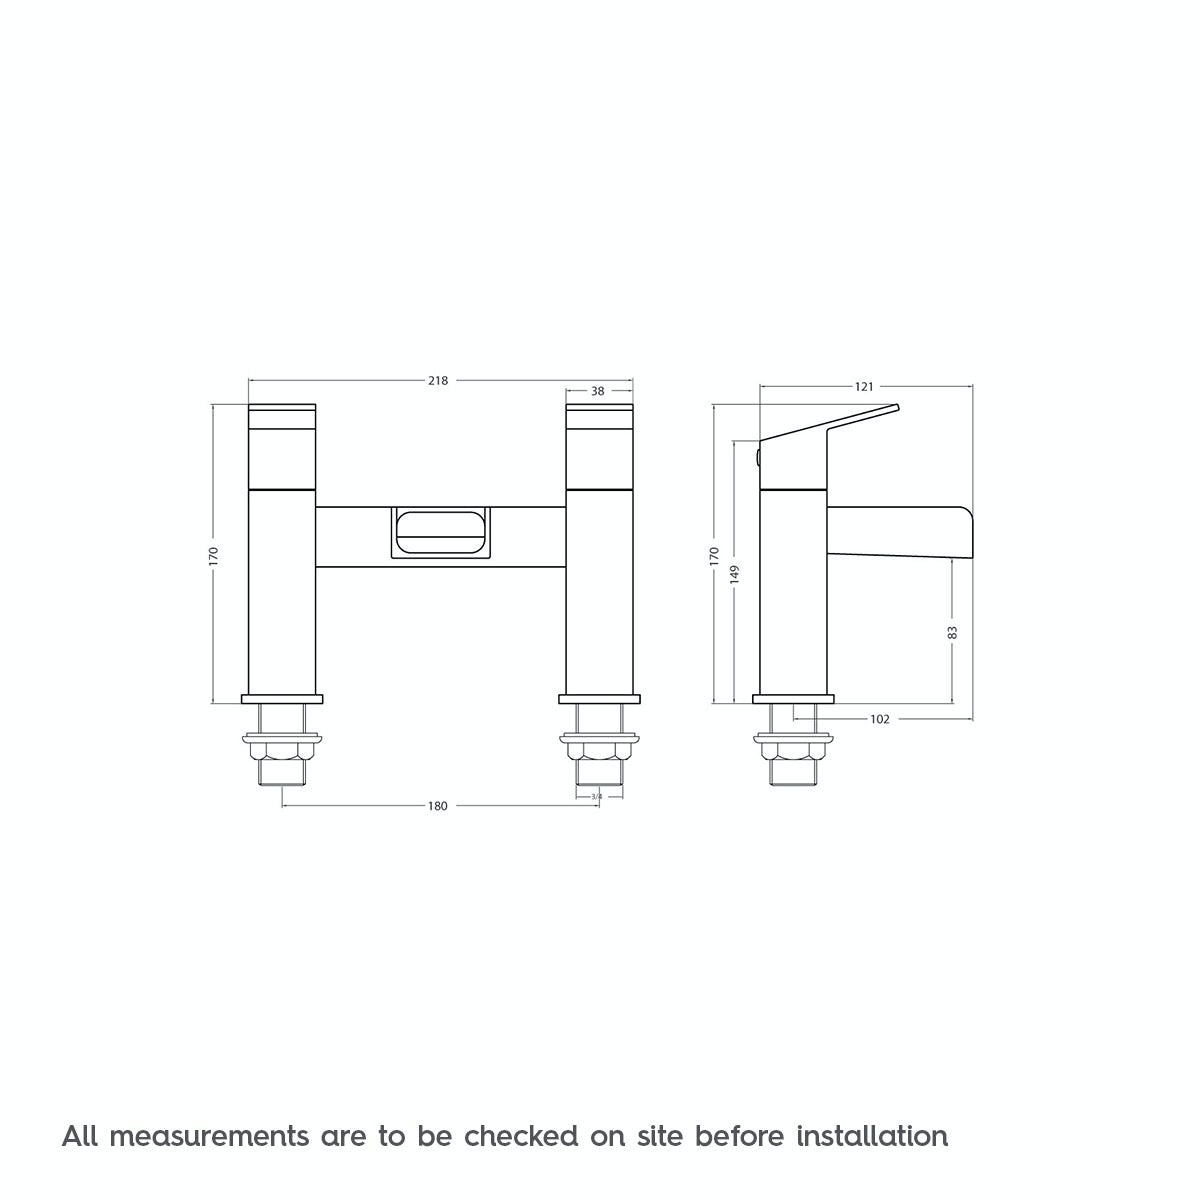 Dimensions for Orchard Wye waterfall bath mixer tap